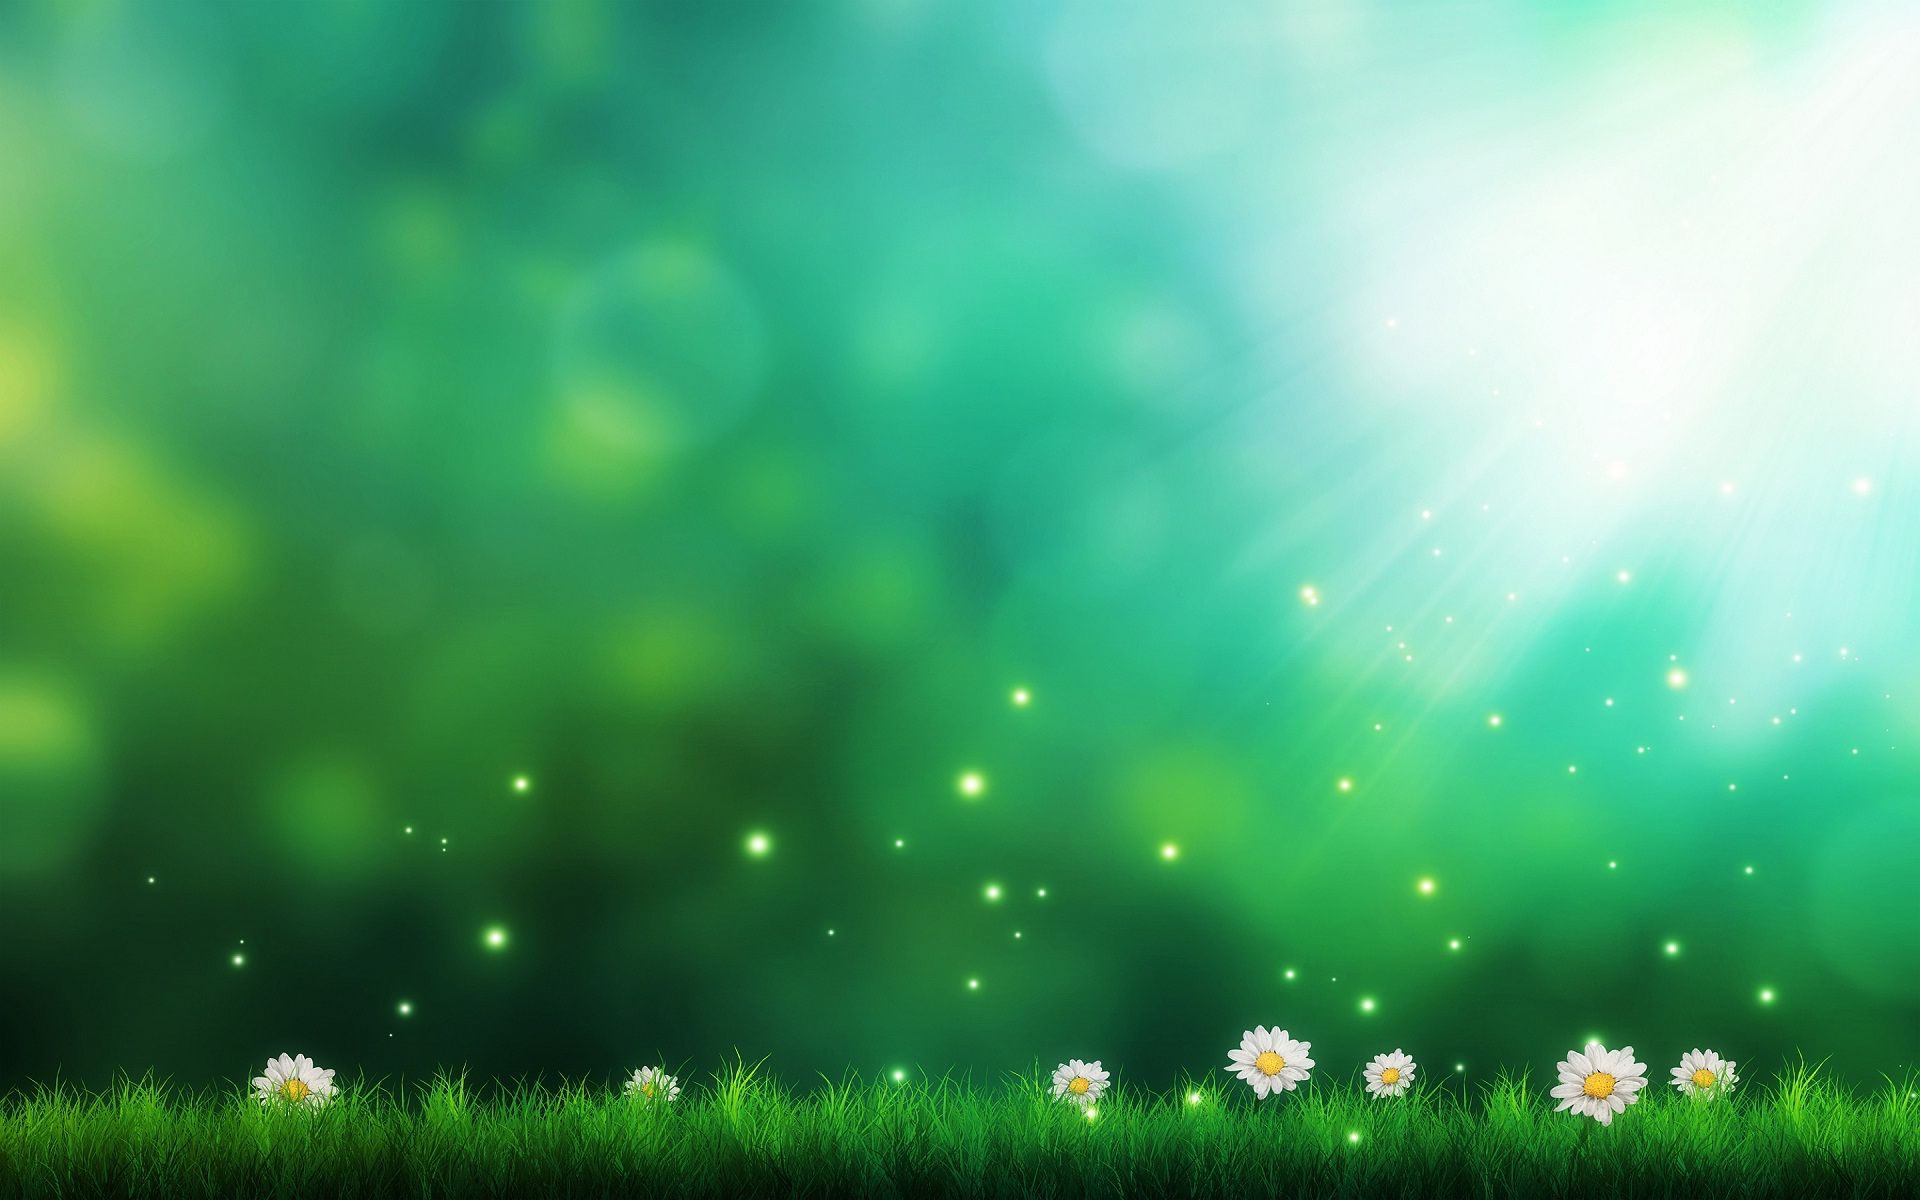 Plain Wallpapers HD green flowers